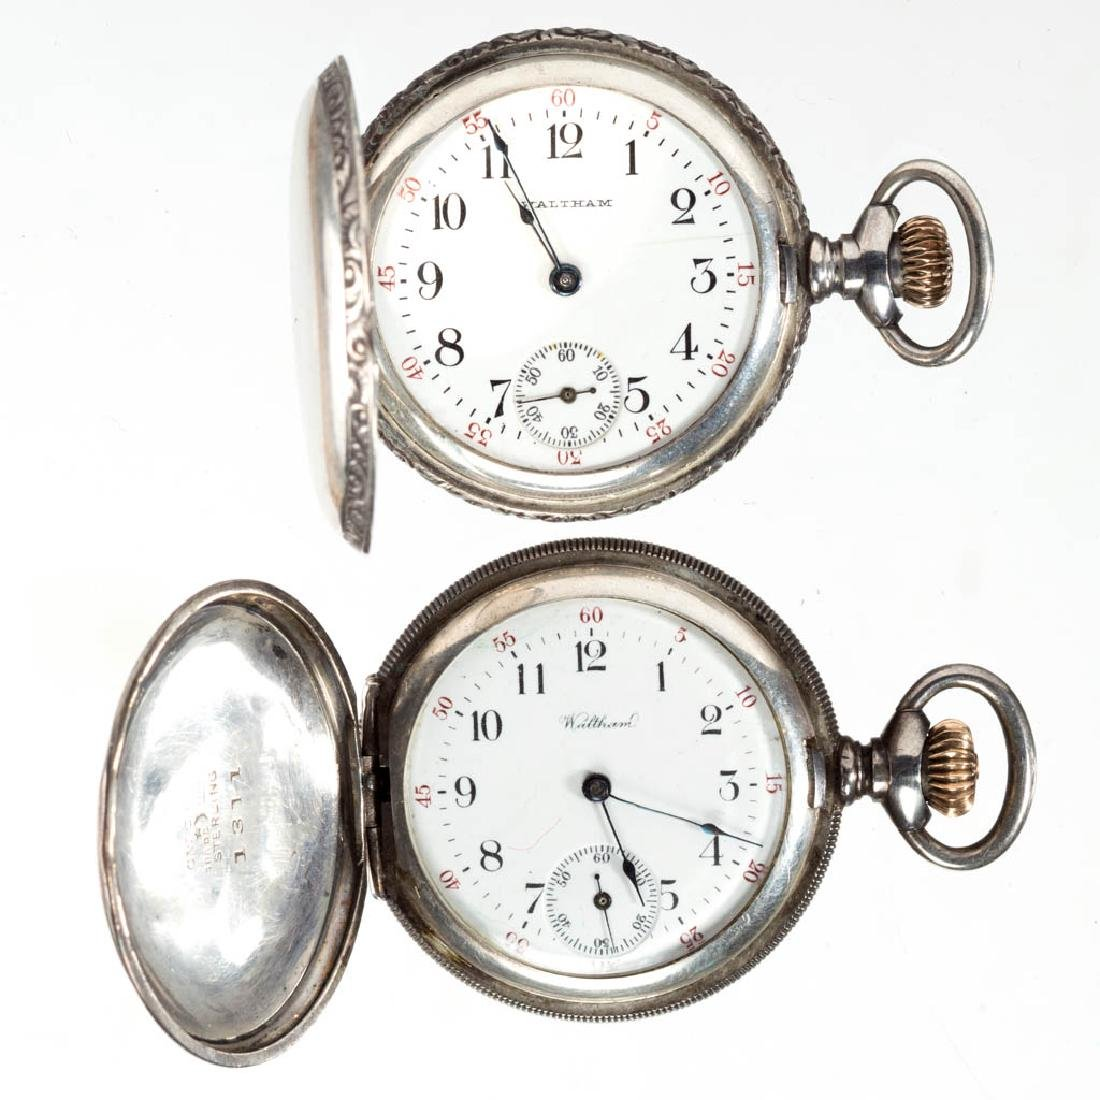 WALTHAM STERLING SILVER CASE MODEL 1891 POCKET WATCHES,